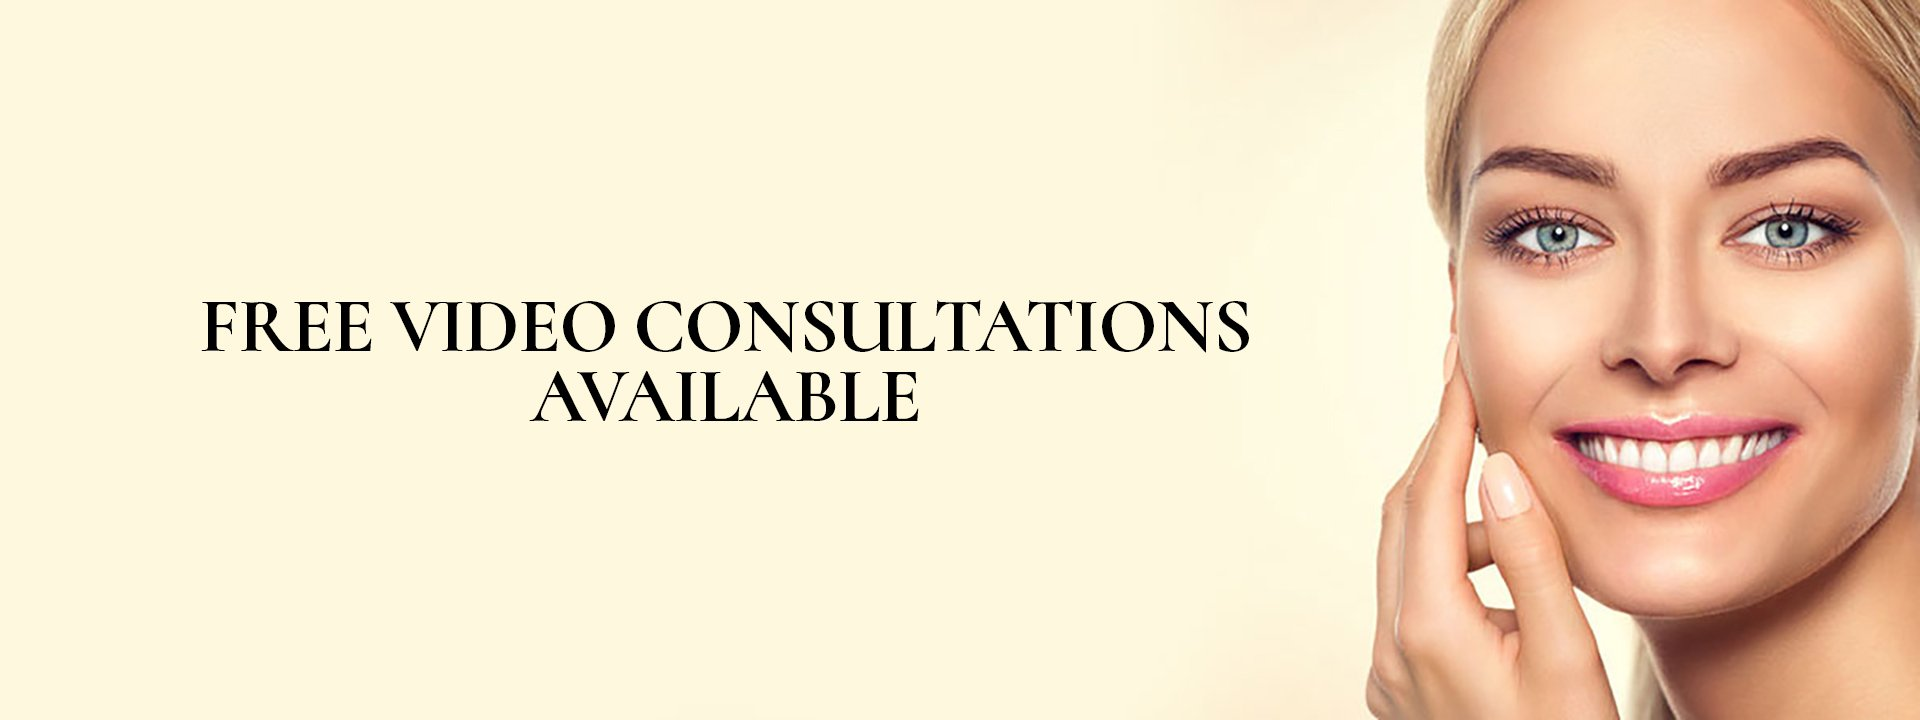 Free Video Consultations Available at Blonde Envy by ZIGZAG Salons in Milton Keynes & Towcester